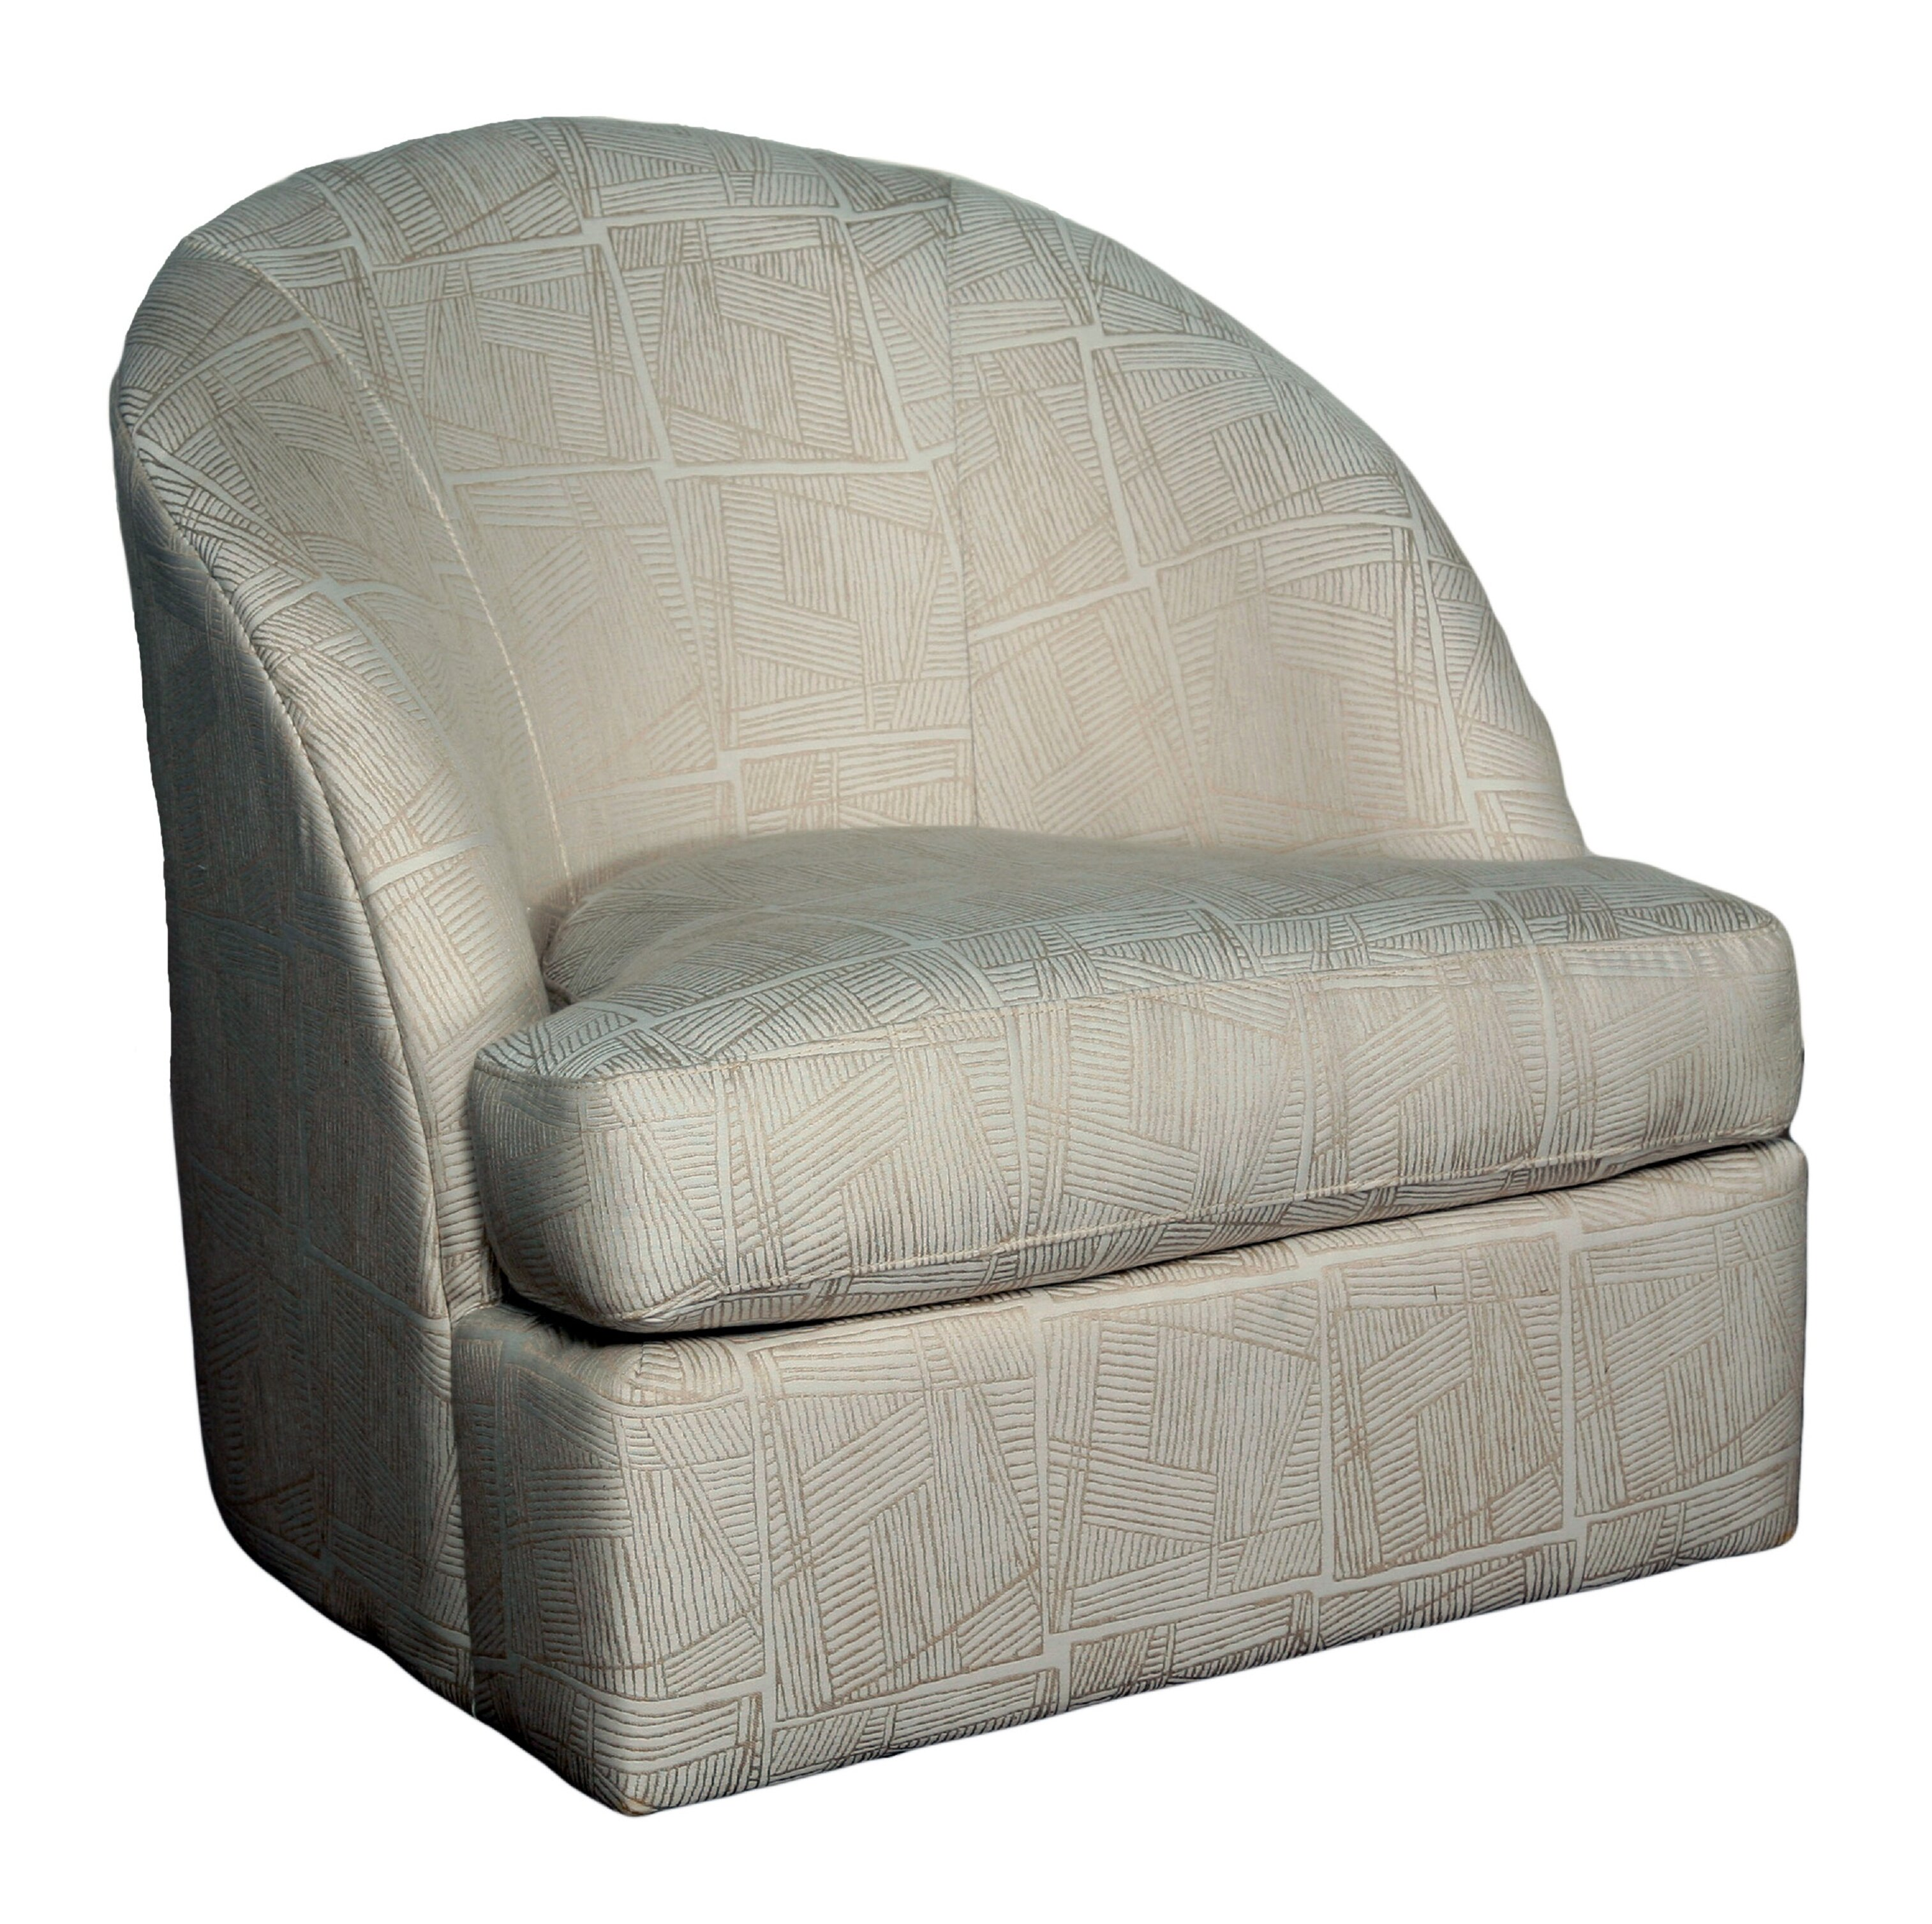 ingenious oversized barrel inspiration extremely latitude reviews excellent amp idea chair run swivel cuddle bradfield